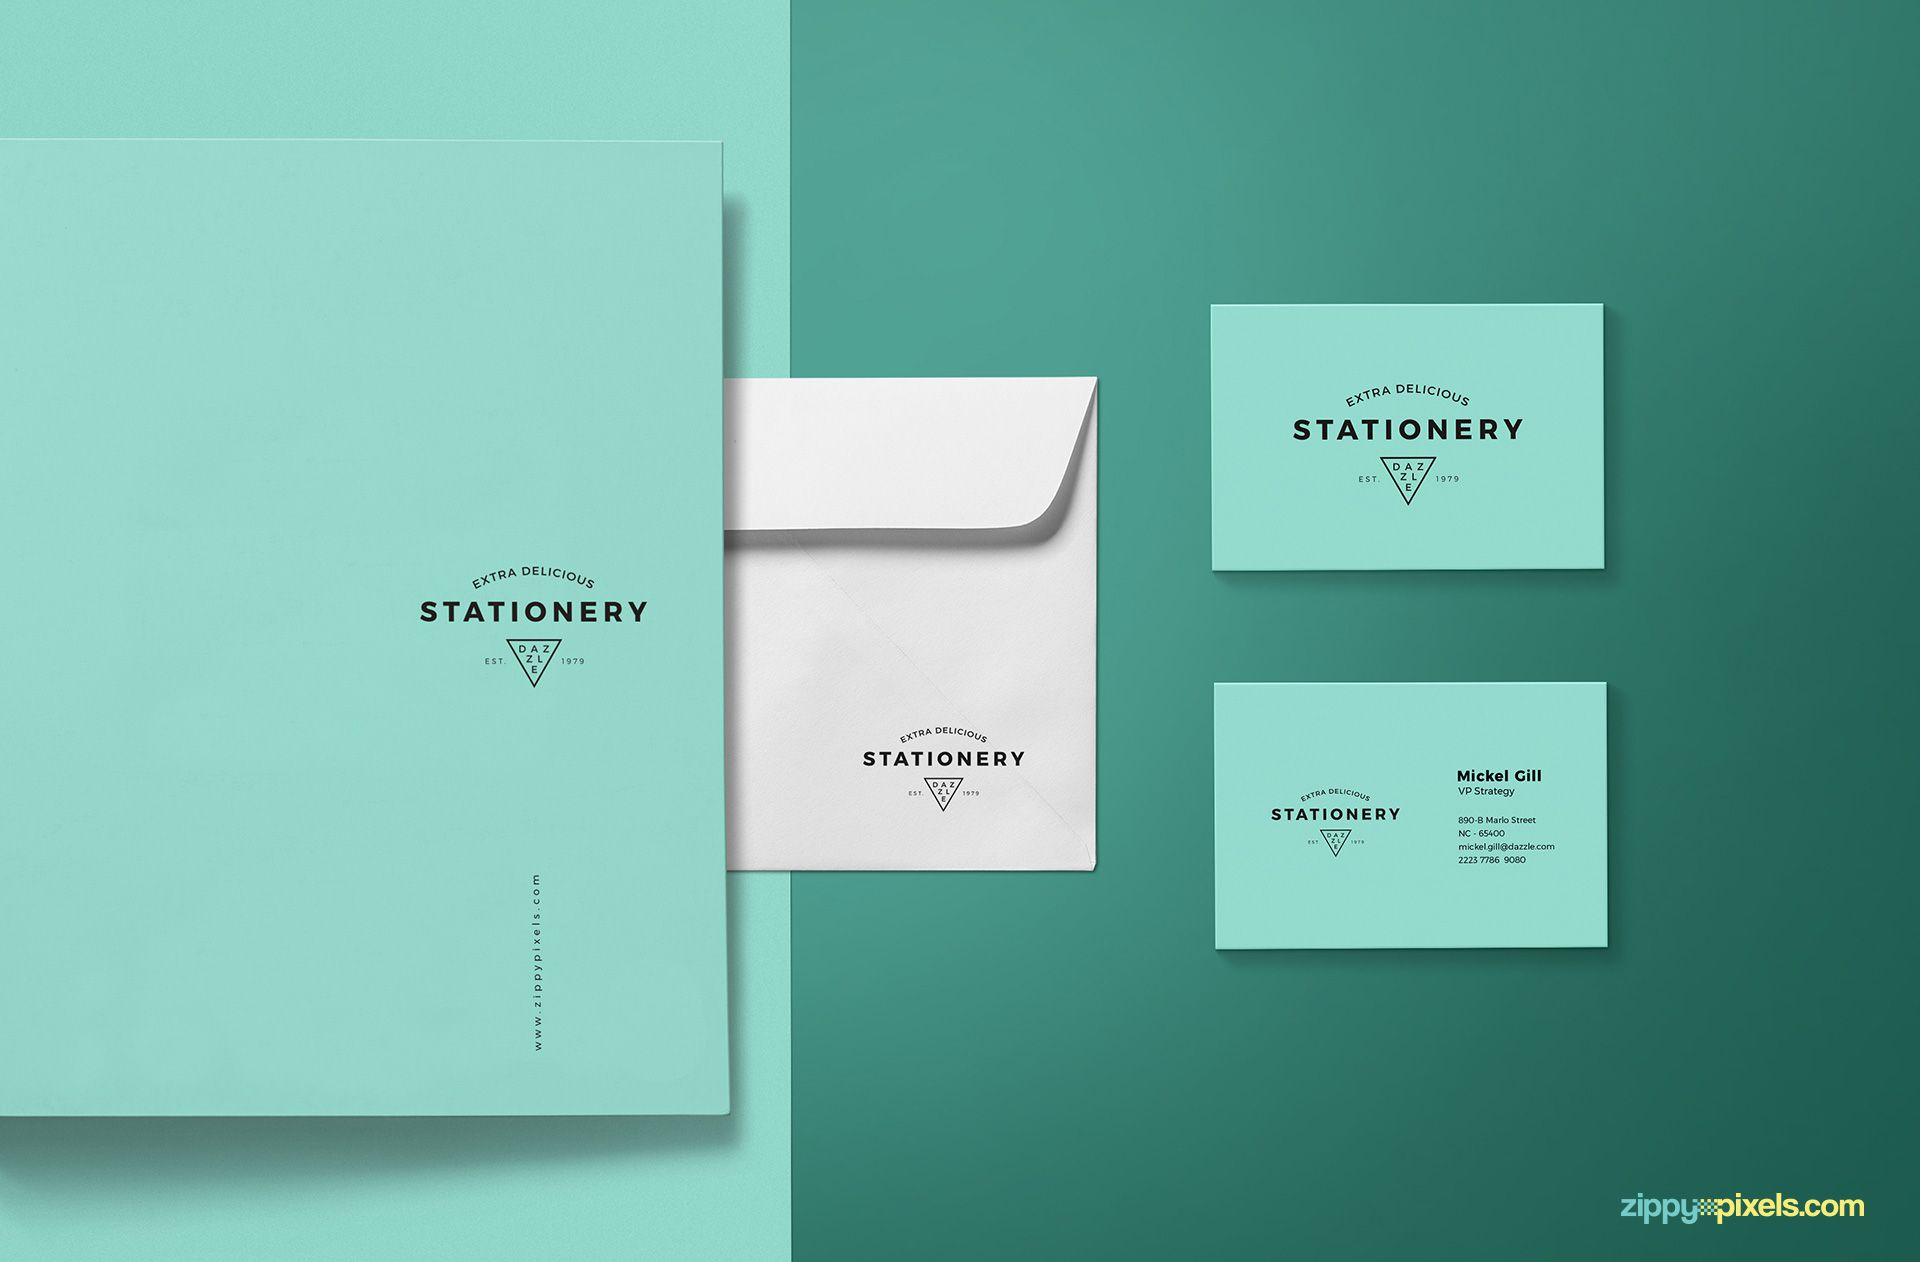 Best stationery branding mockup.